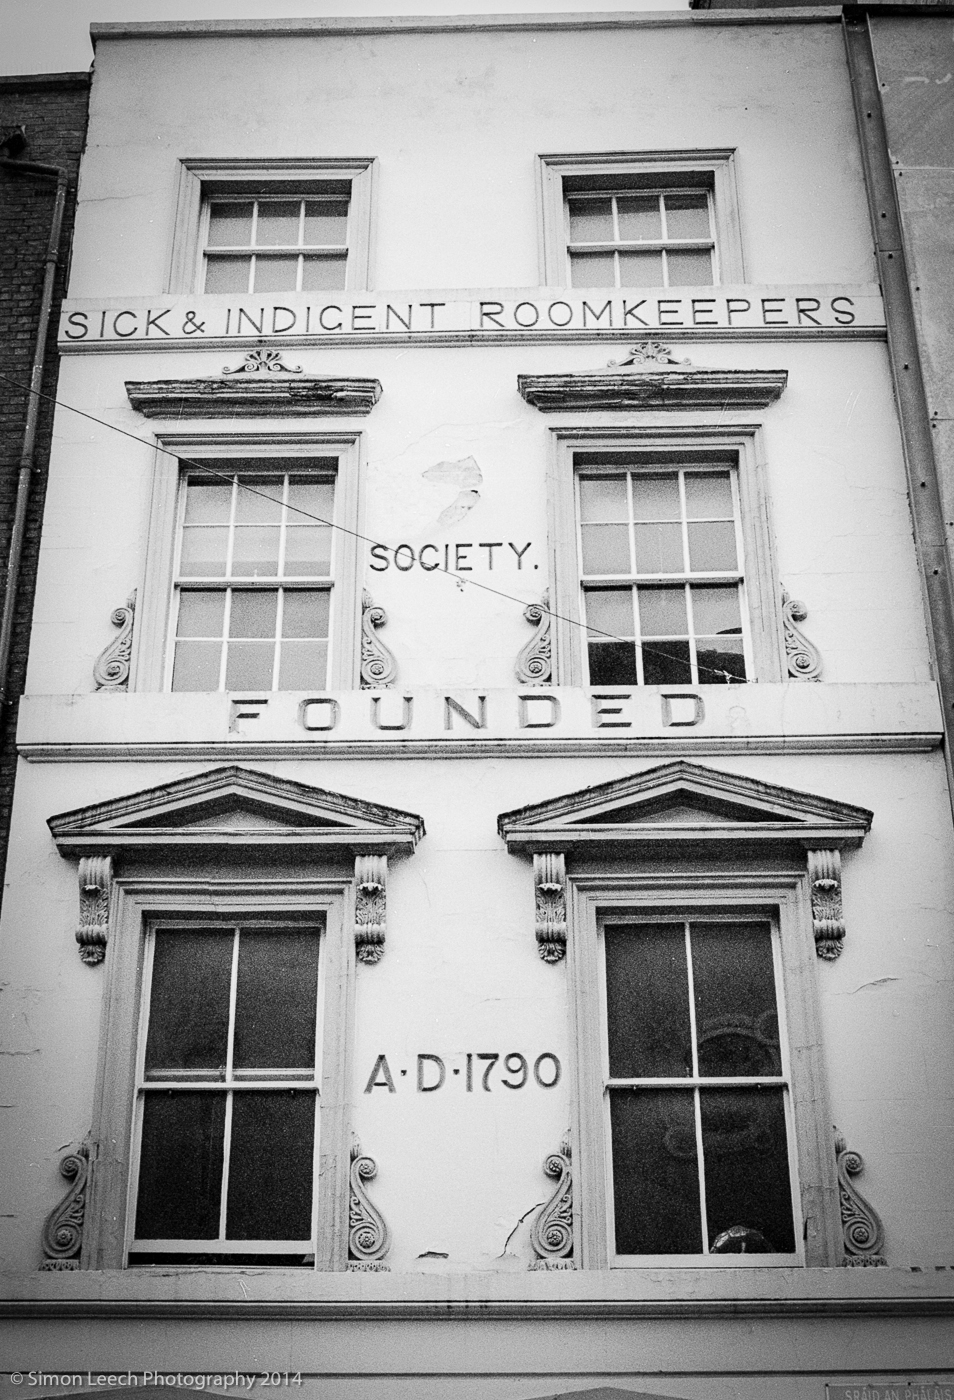 Sick and Incident Roomkeepers Society